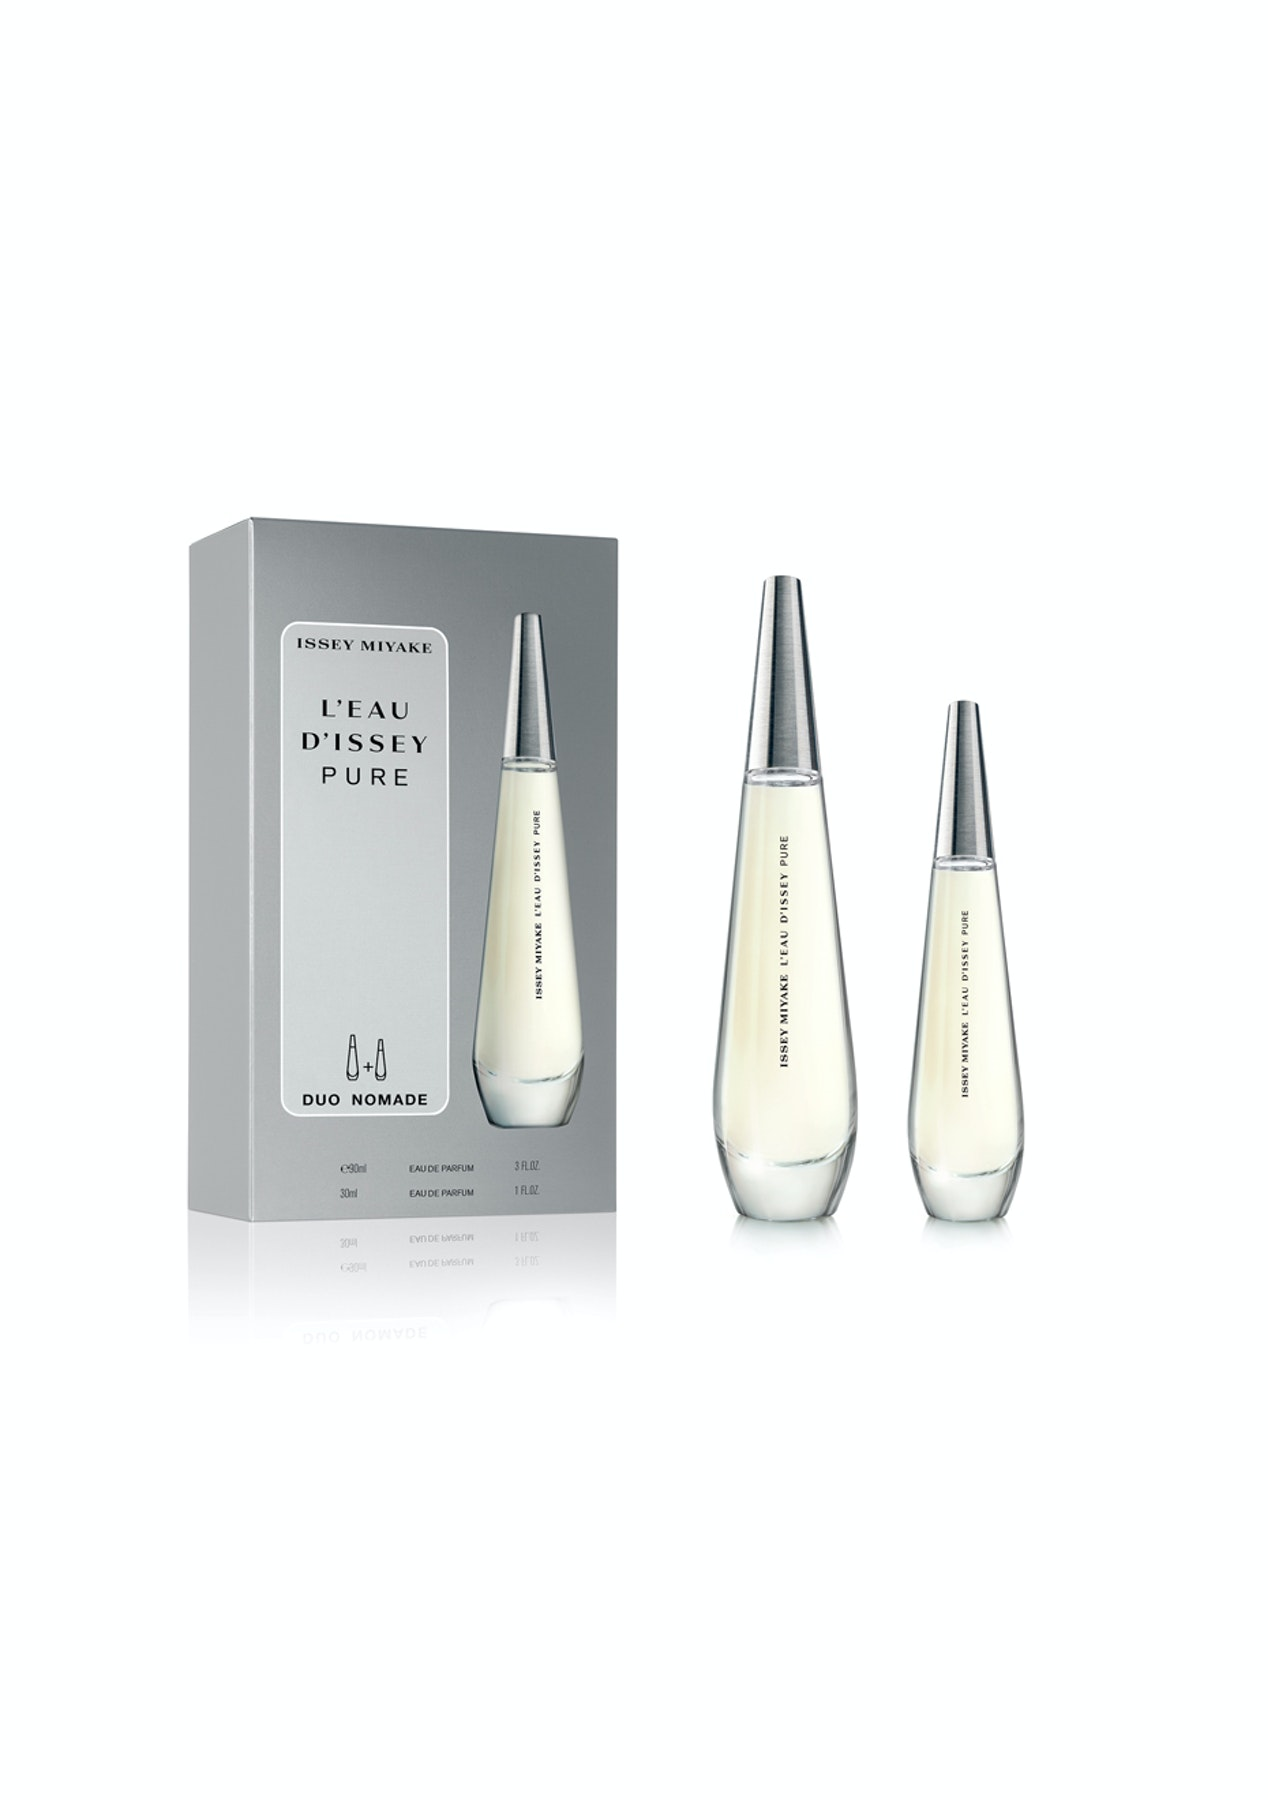 Issey Miyake Leau Dissey Pure Edp 90ml 30ml Value Set 100